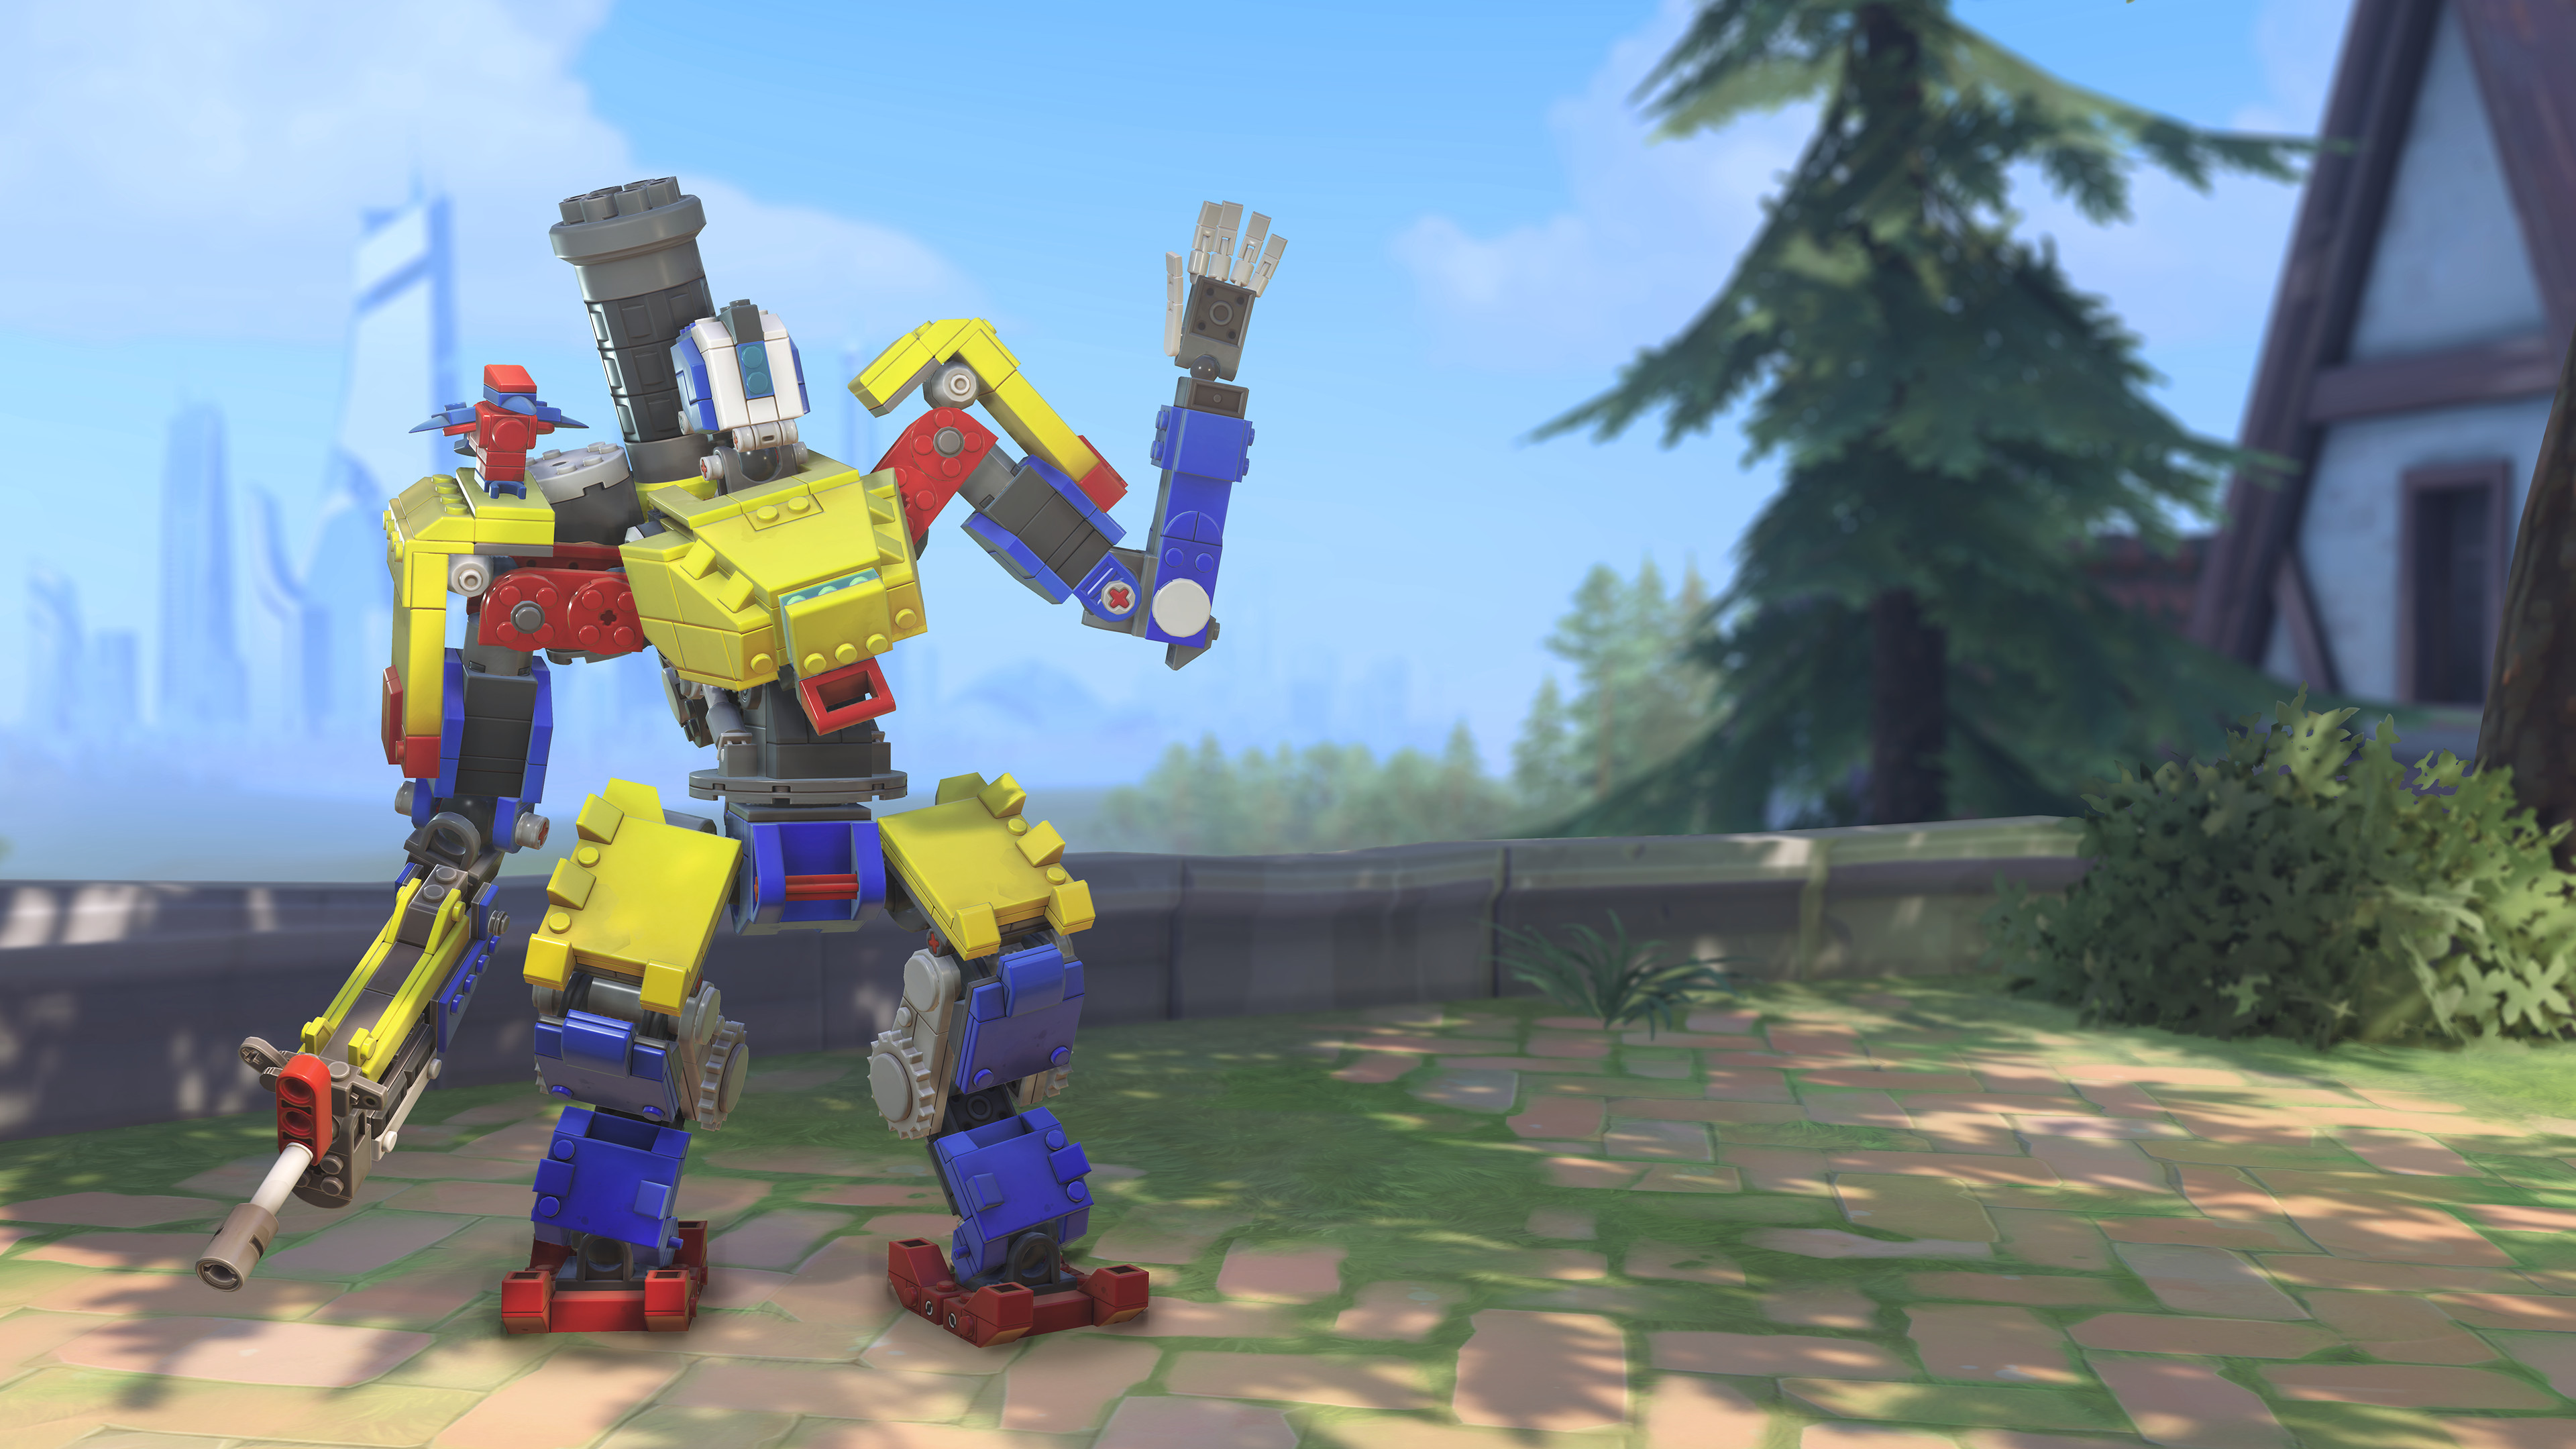 New Overwatch event lets players earn a Lego-themed Bastion skin | PC Gamer